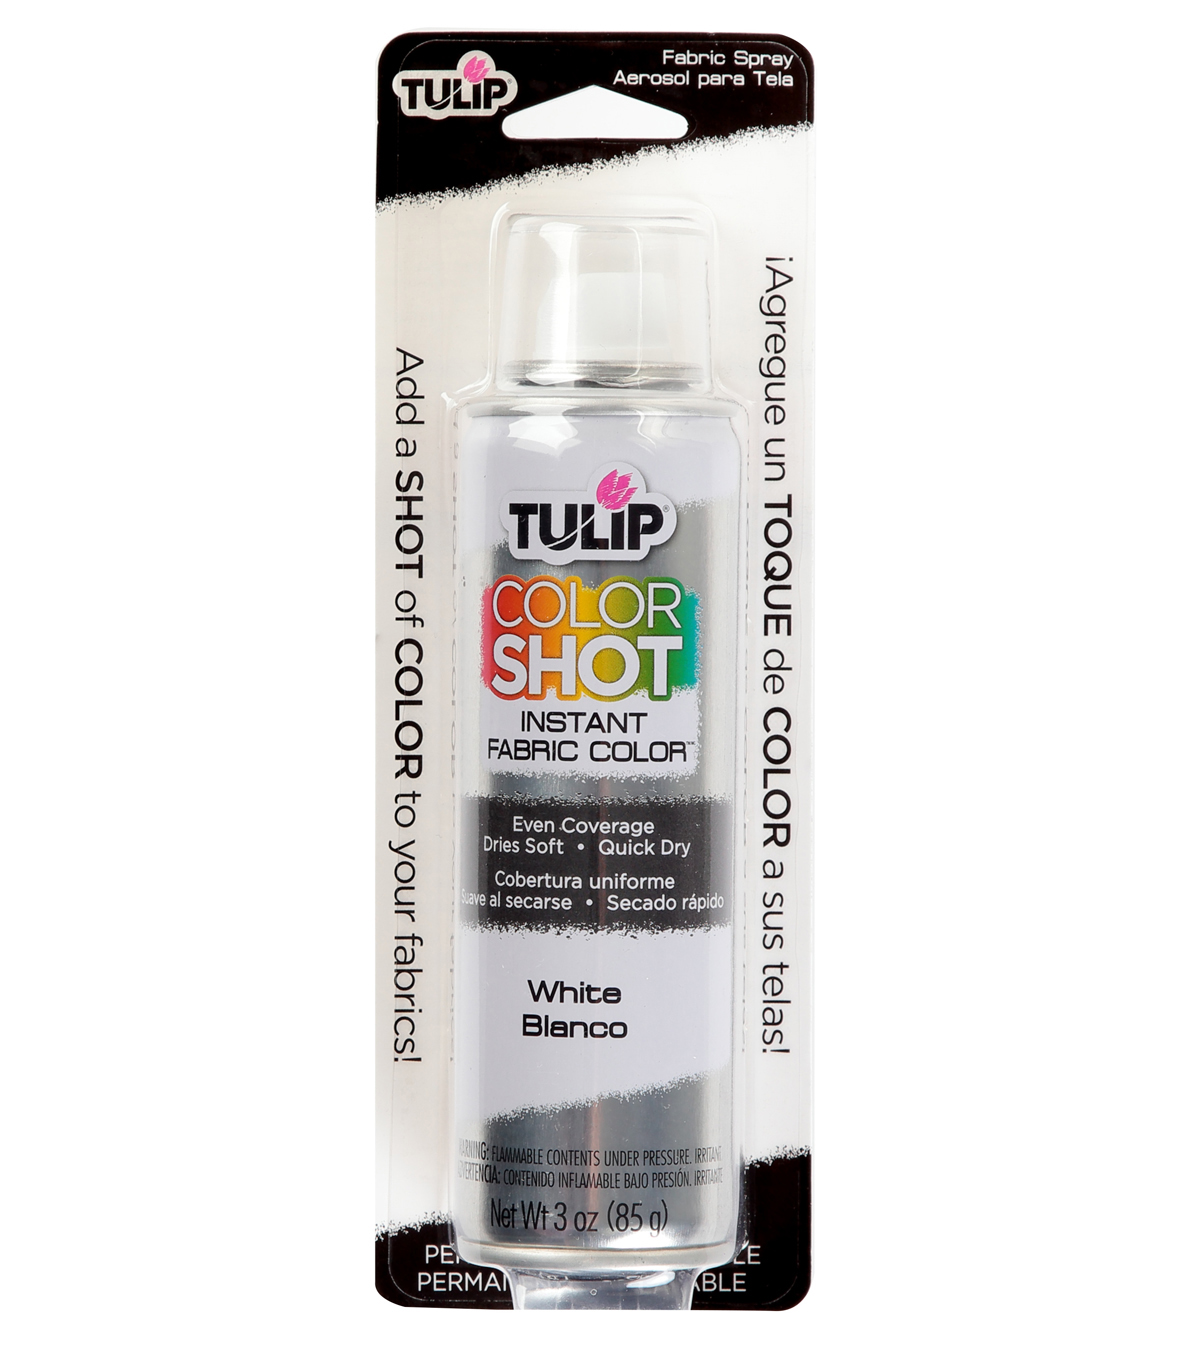 Tulip ColorShot Instant Fabric Color Spray 3oz, White